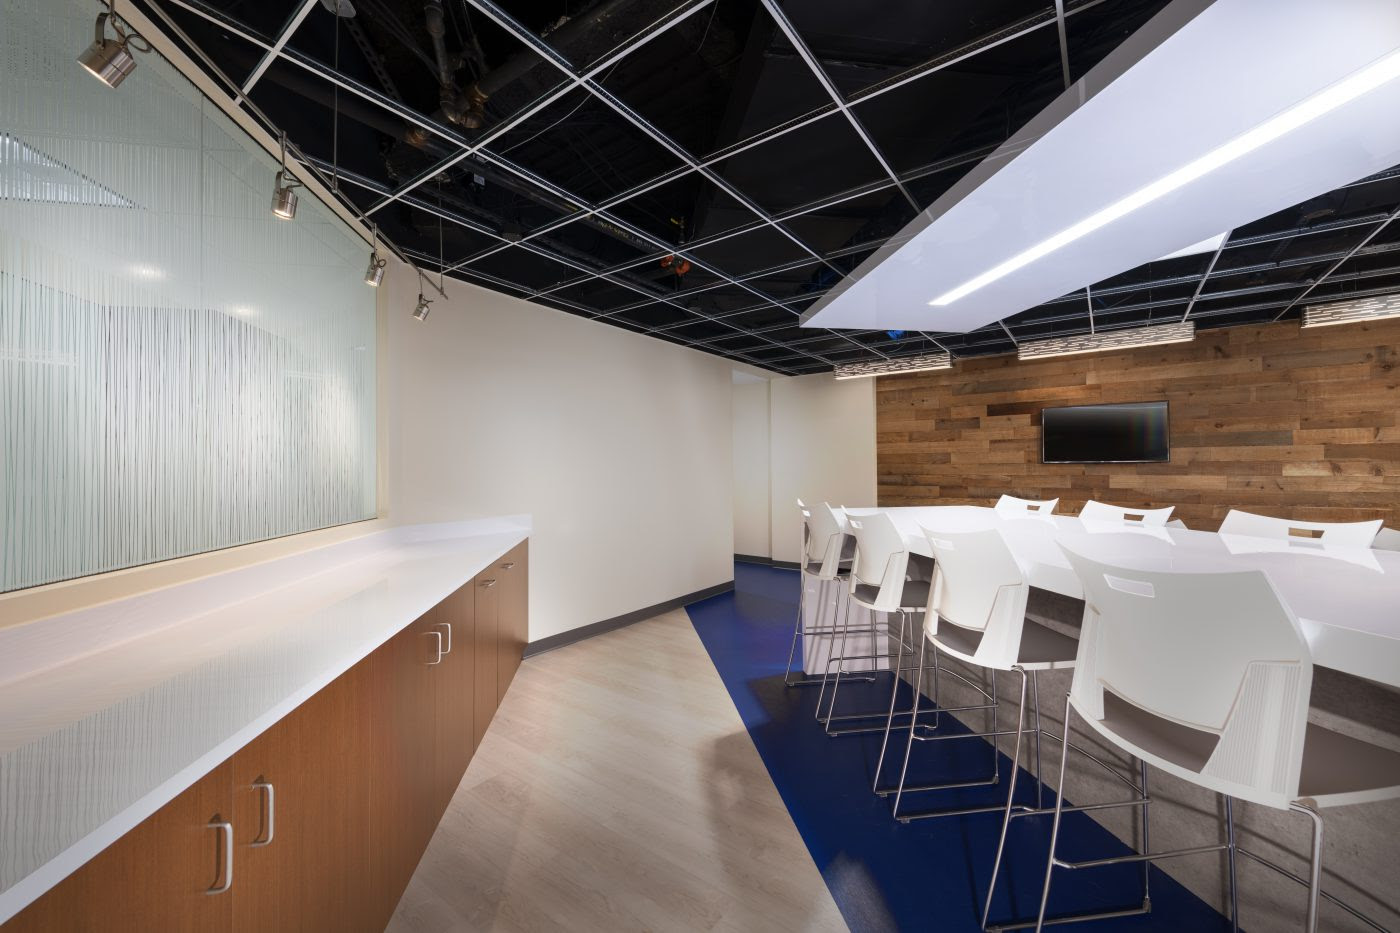 100 Lakeforest Blvd Cafe And Breakout Space Bates Architects